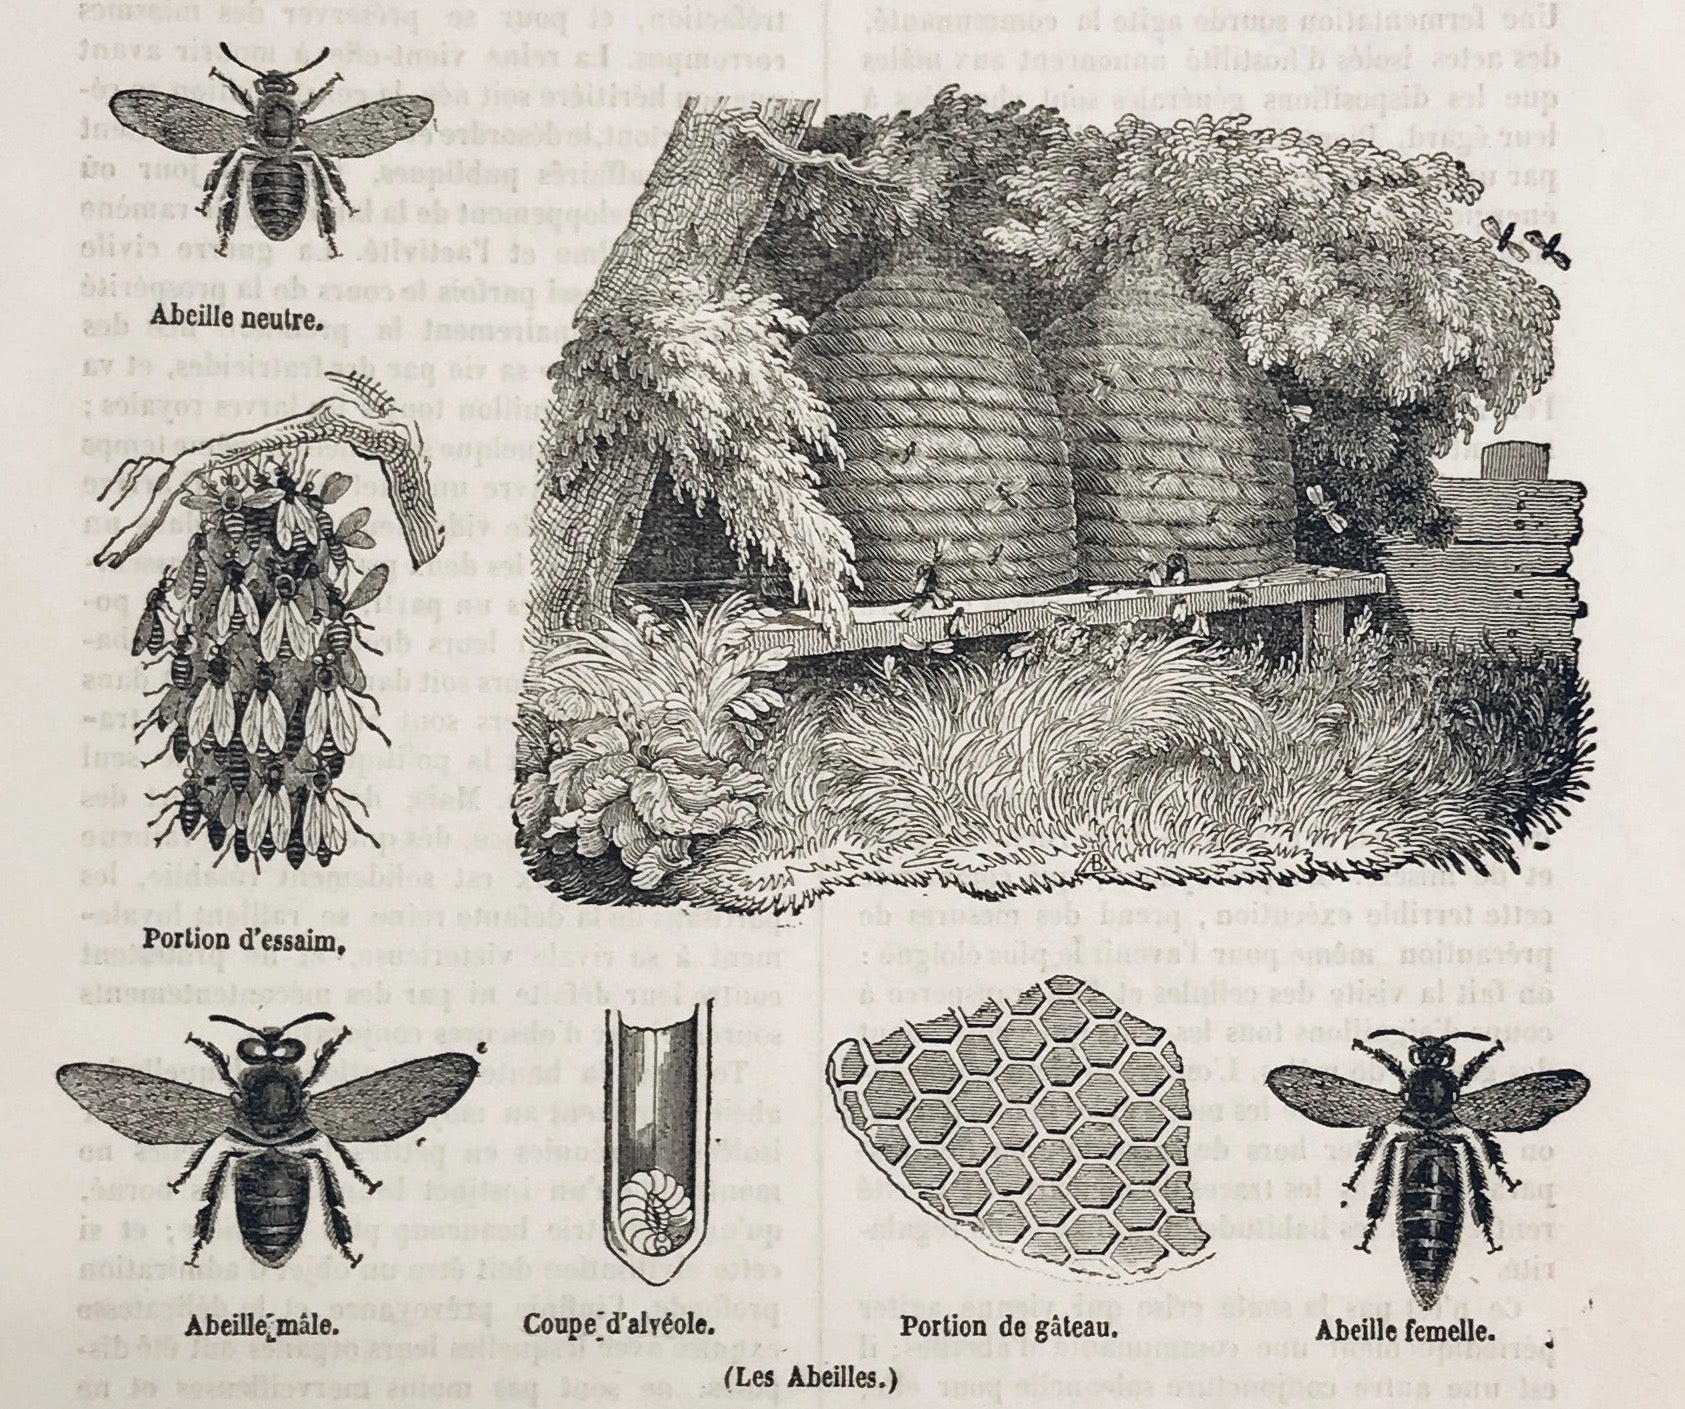 No Title  From above left: Part of comb, Male Bee, Section of Cell, Part of the swarm, Female Bee, Neuter Bee. Wood engraving 1844. Below the image, on the reverse side and on a separate page is text in French about bees.